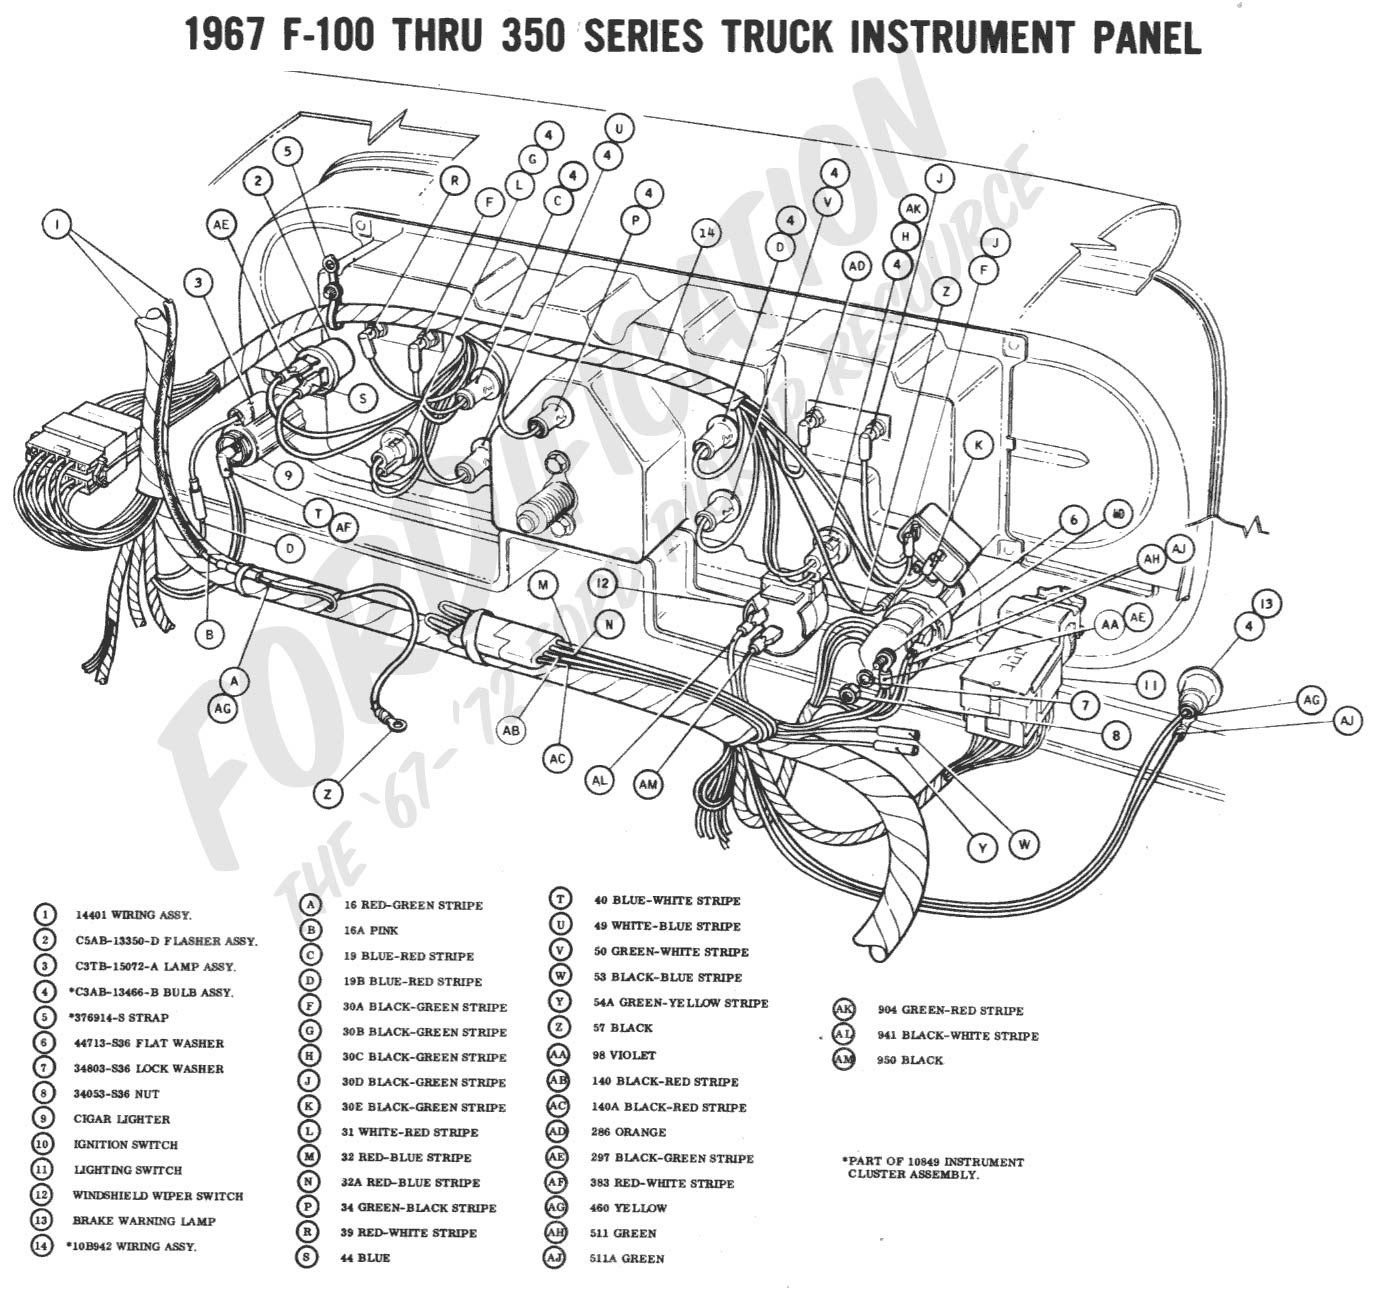 Nissan Wiring Diagram 401468592 further Viewtopic in addition Jeep Dana 44 Rear Axle Diagram On Cj7 further 221450506657449789 also Distributor Ignition System Diagram. on vw beetle coil